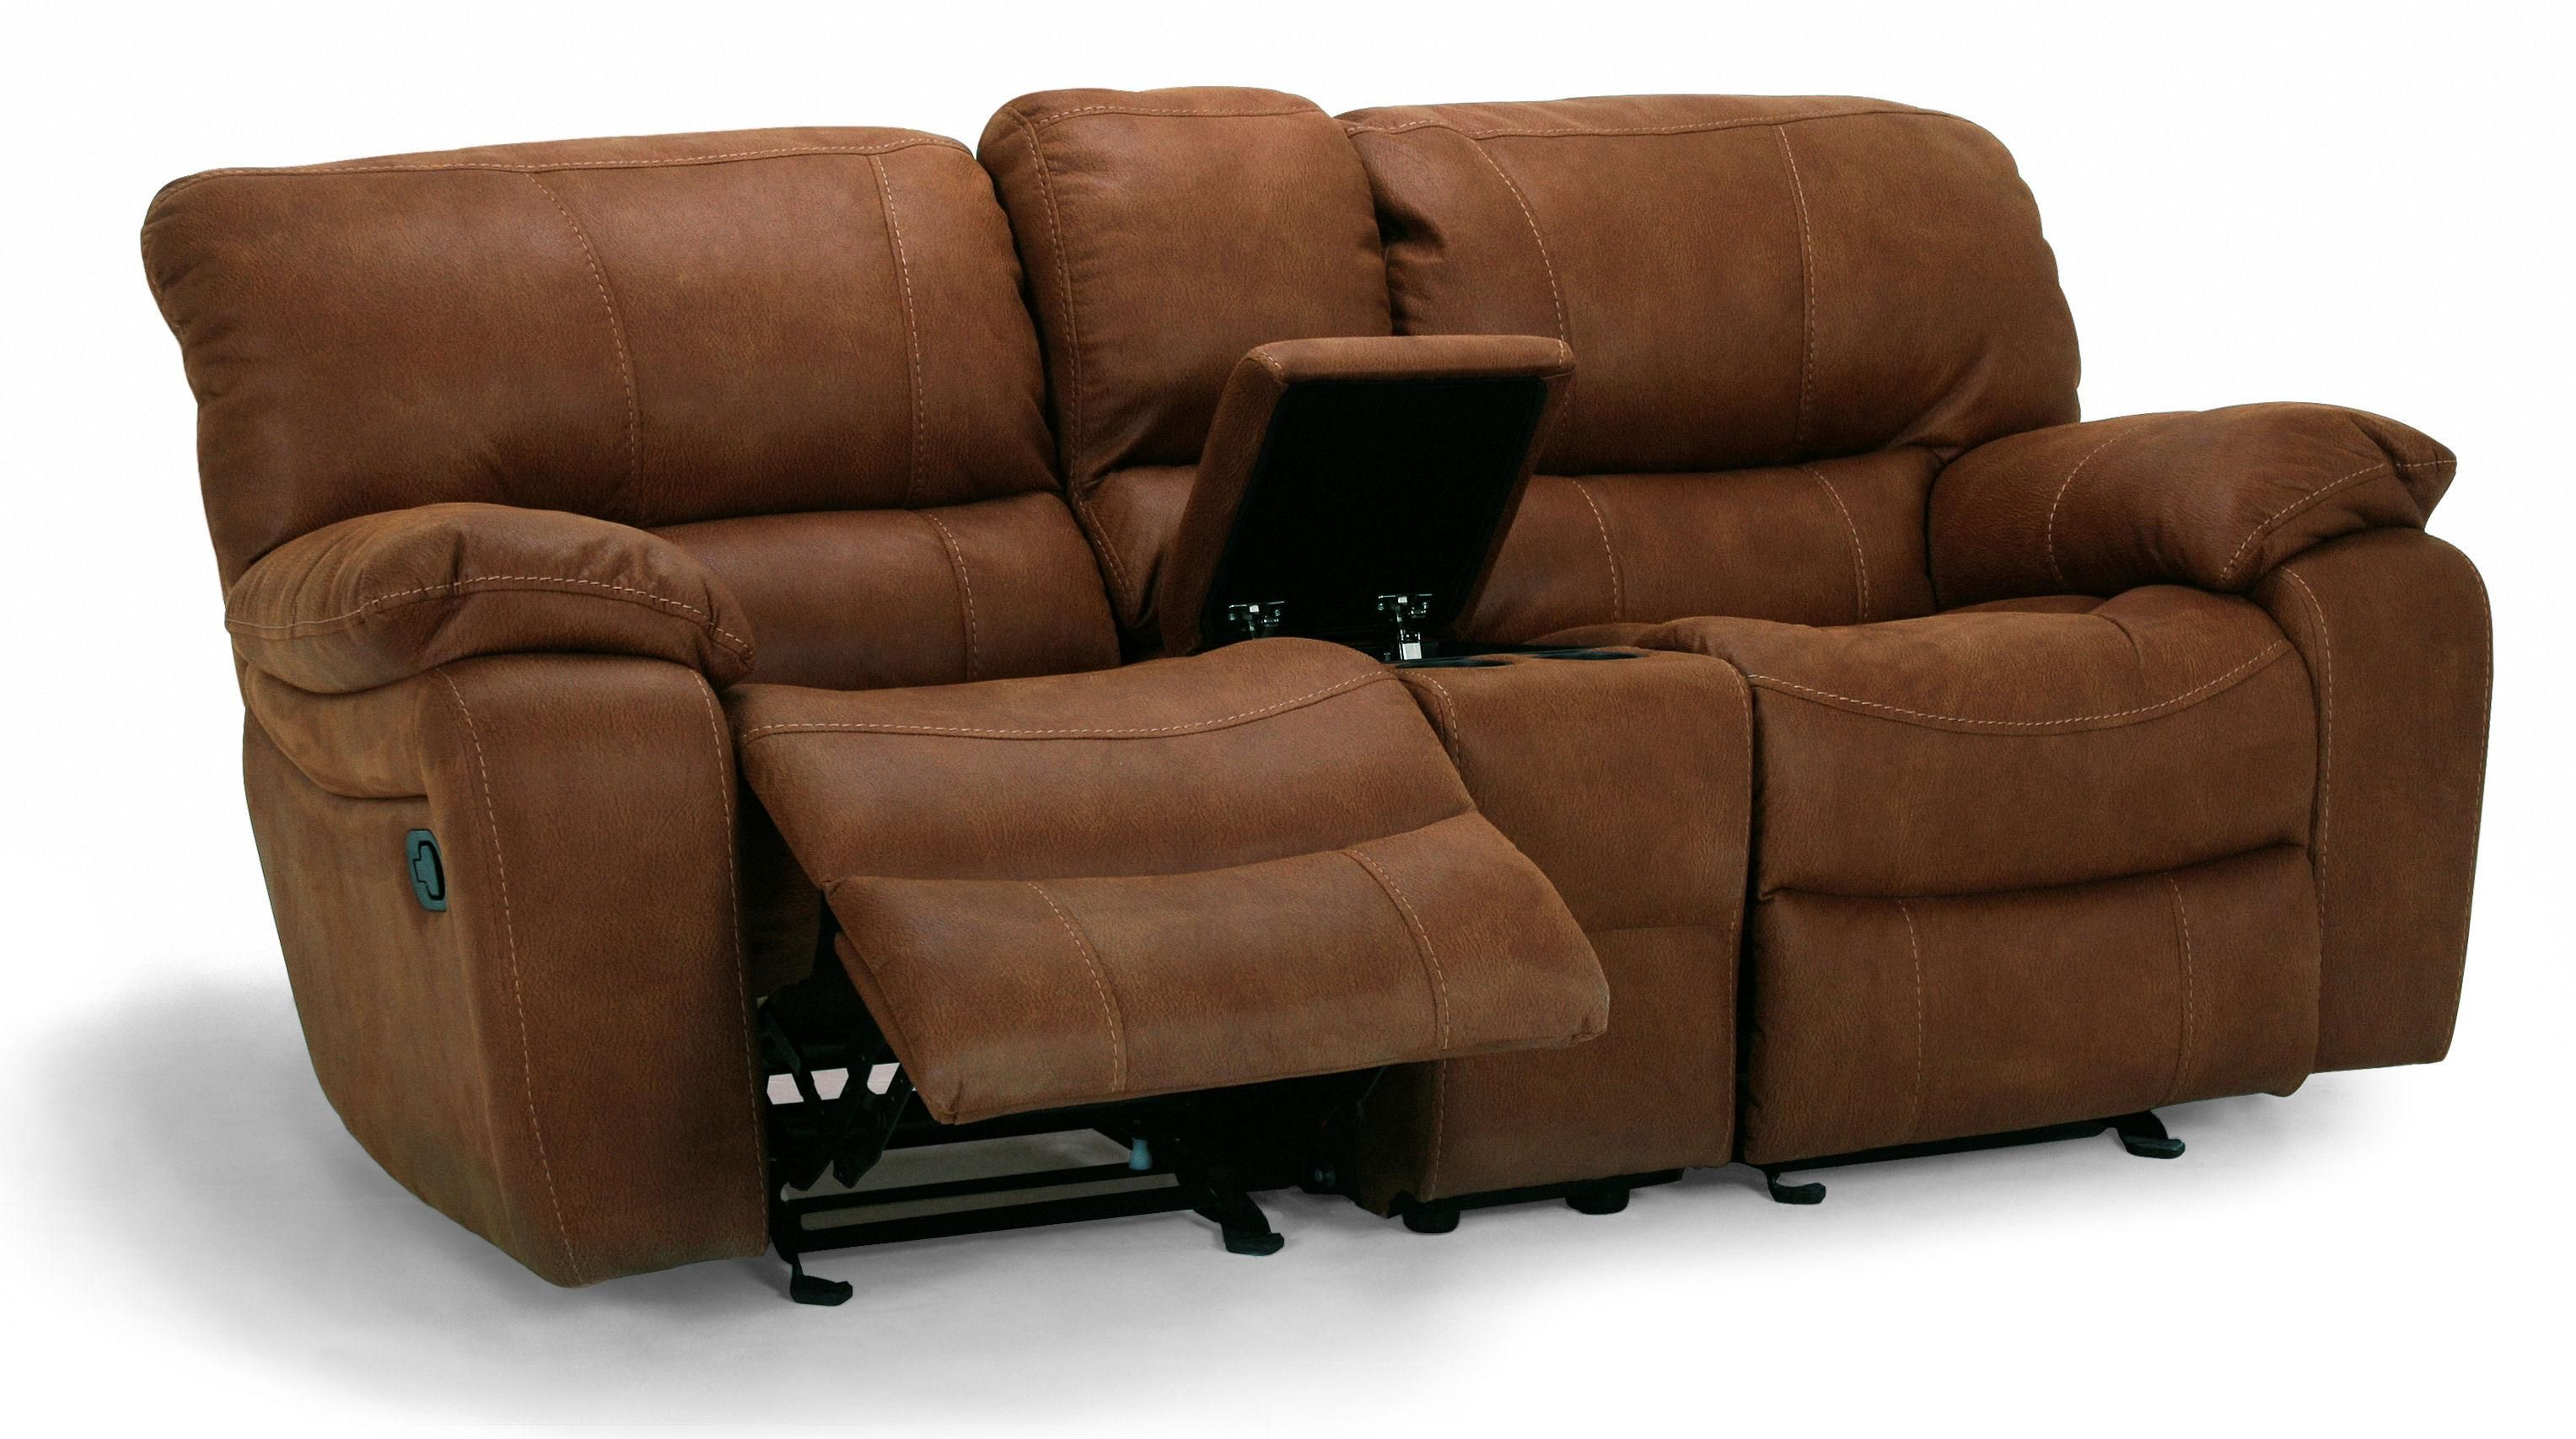 Flexsteel furniture latitudes grandview collection featuring double reclining loveseat with Reclining loveseat with center console